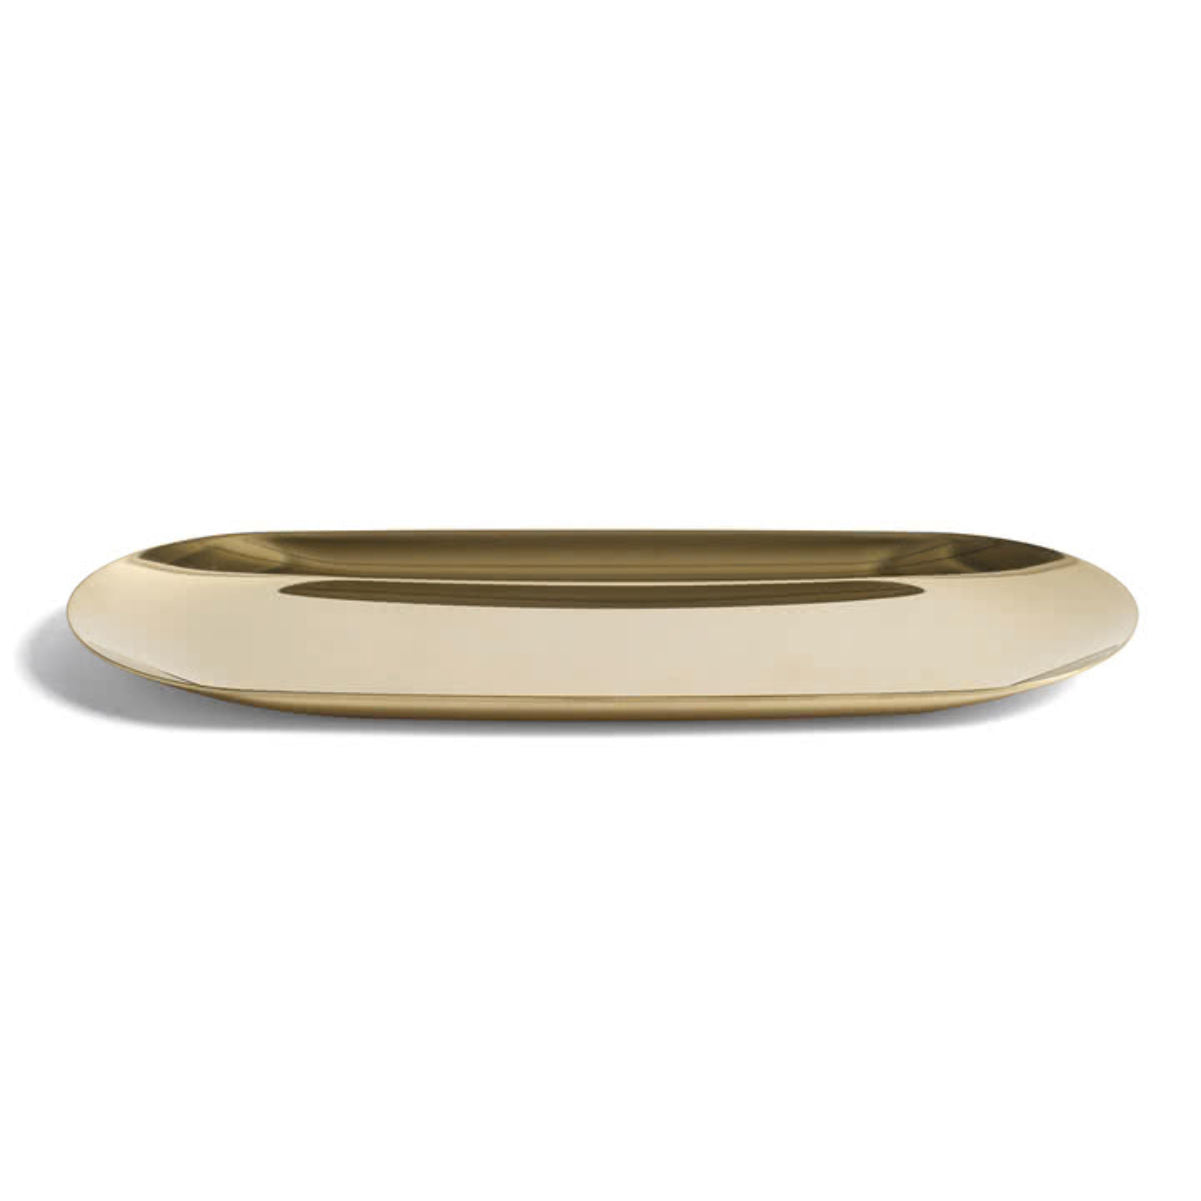 Hay coin tray, gold